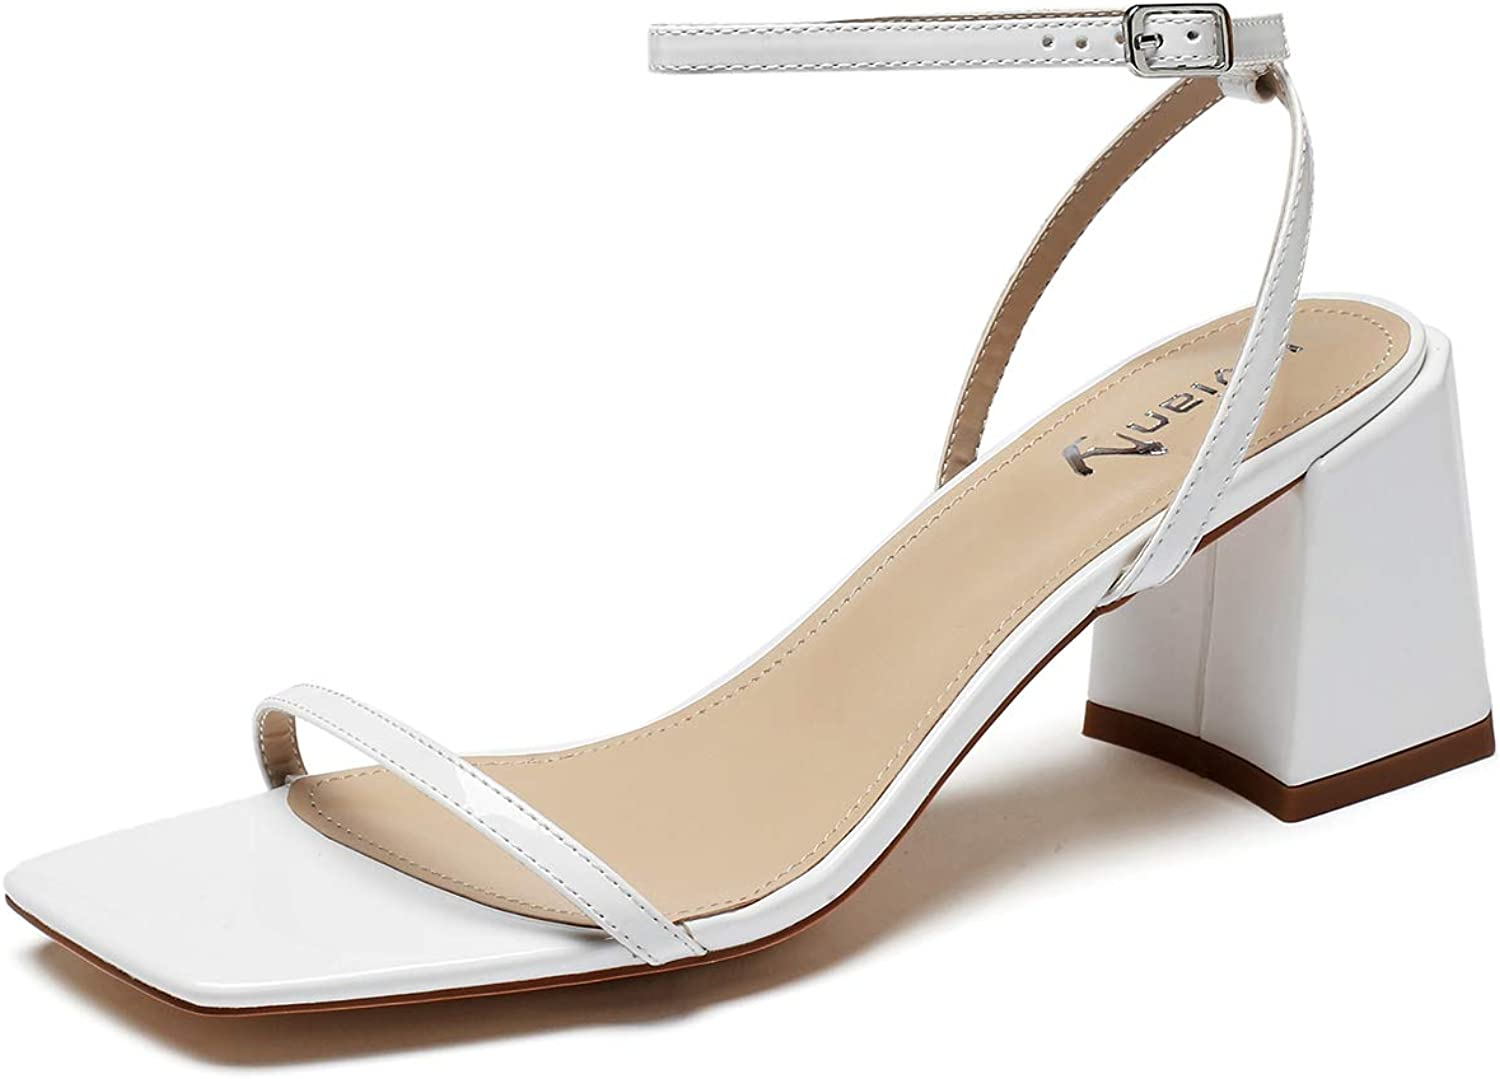 vivianly Womens Open Toe Ankle Strappy High Heels Sandals Stiletto Wedding Party Shoes